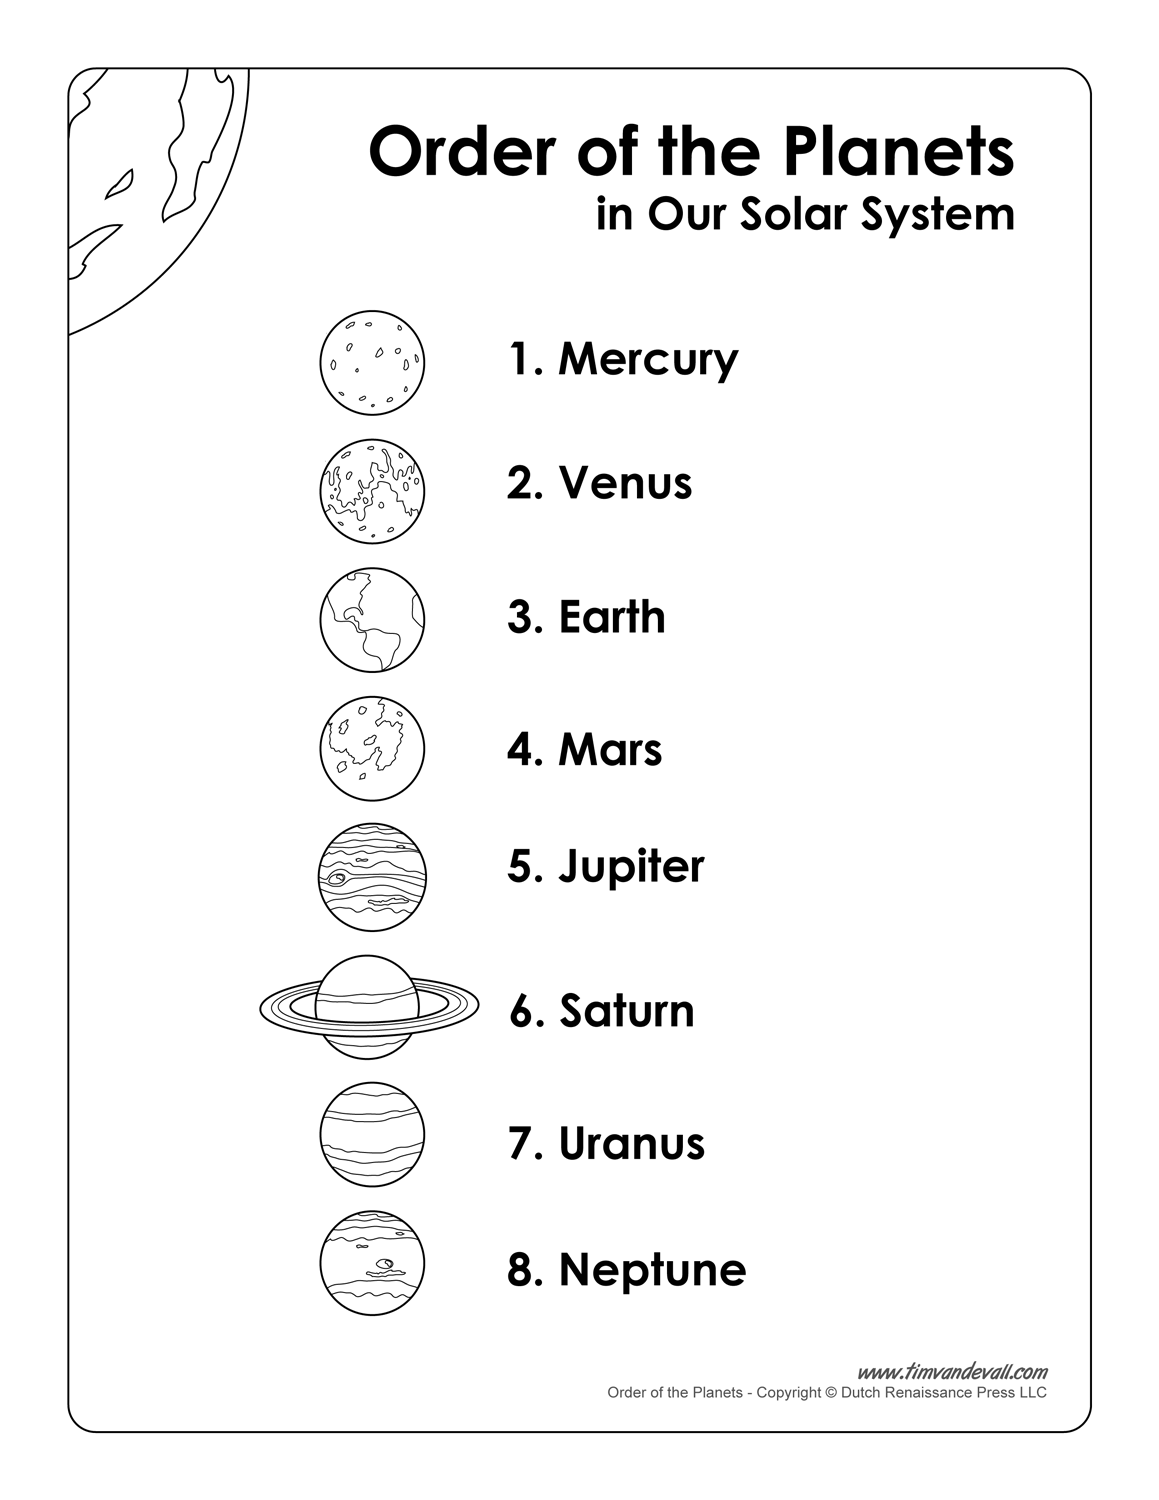 Printable List of Planets in Order